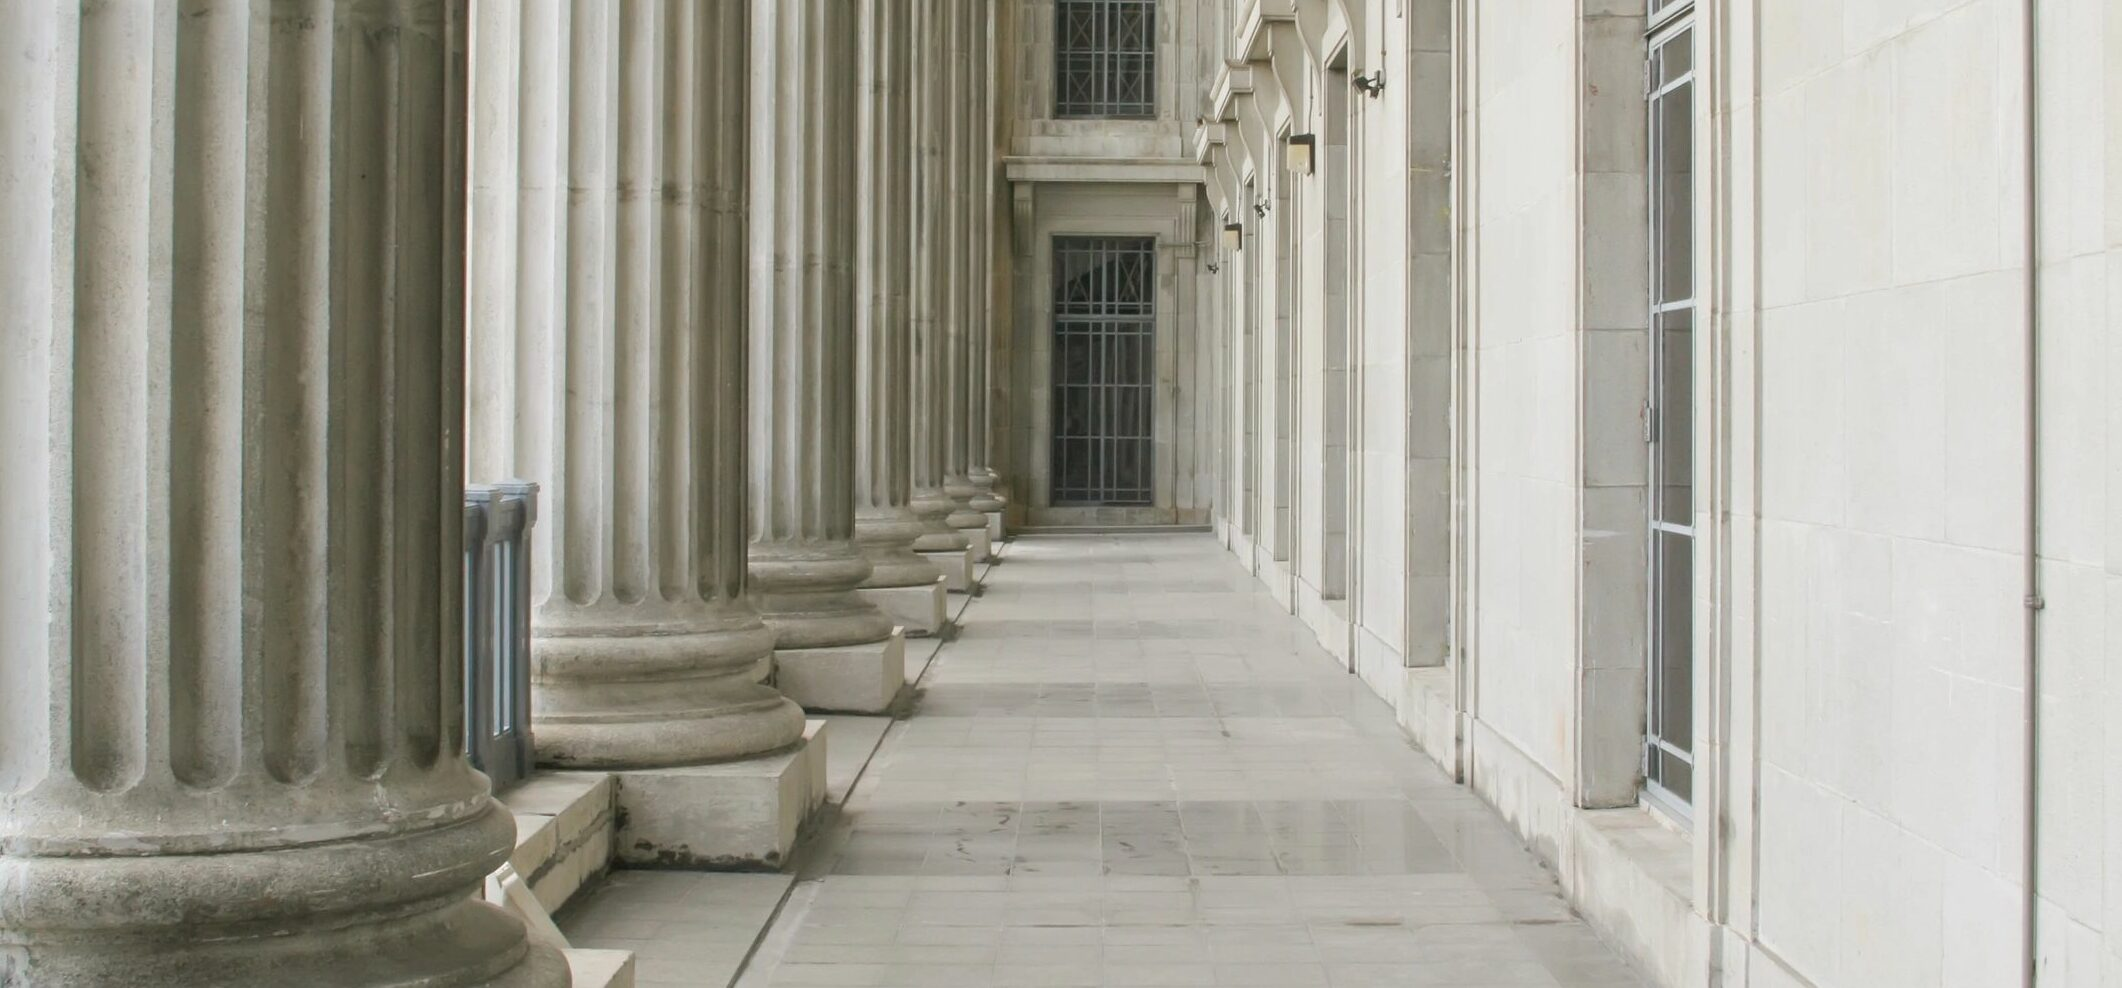 image of stately columns and windows on a government building